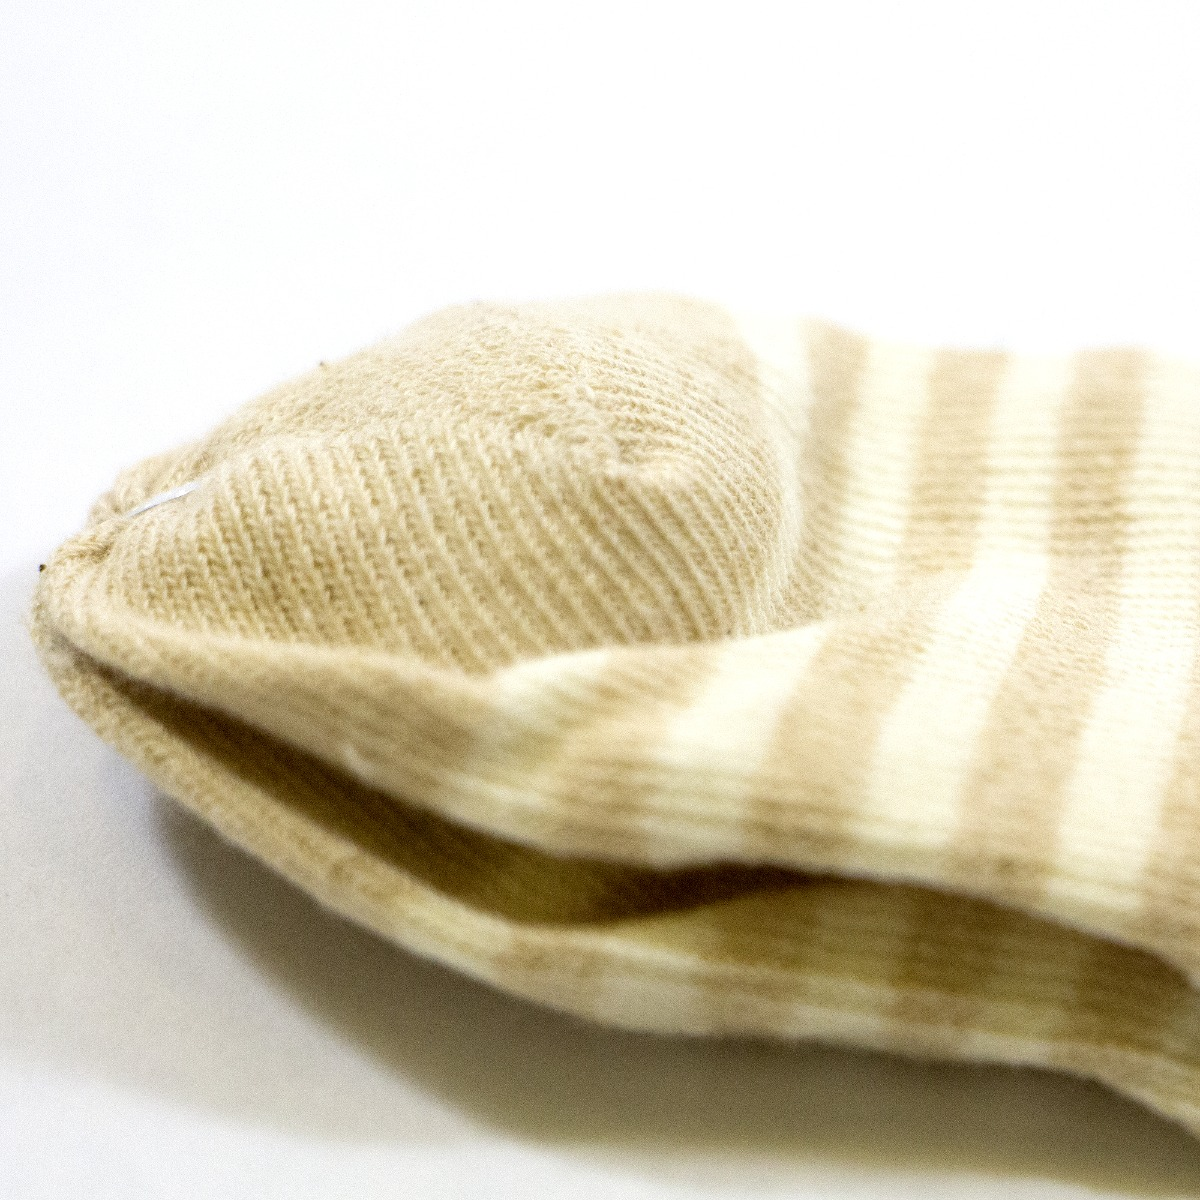 Real • Baby Organic Cotton Socks